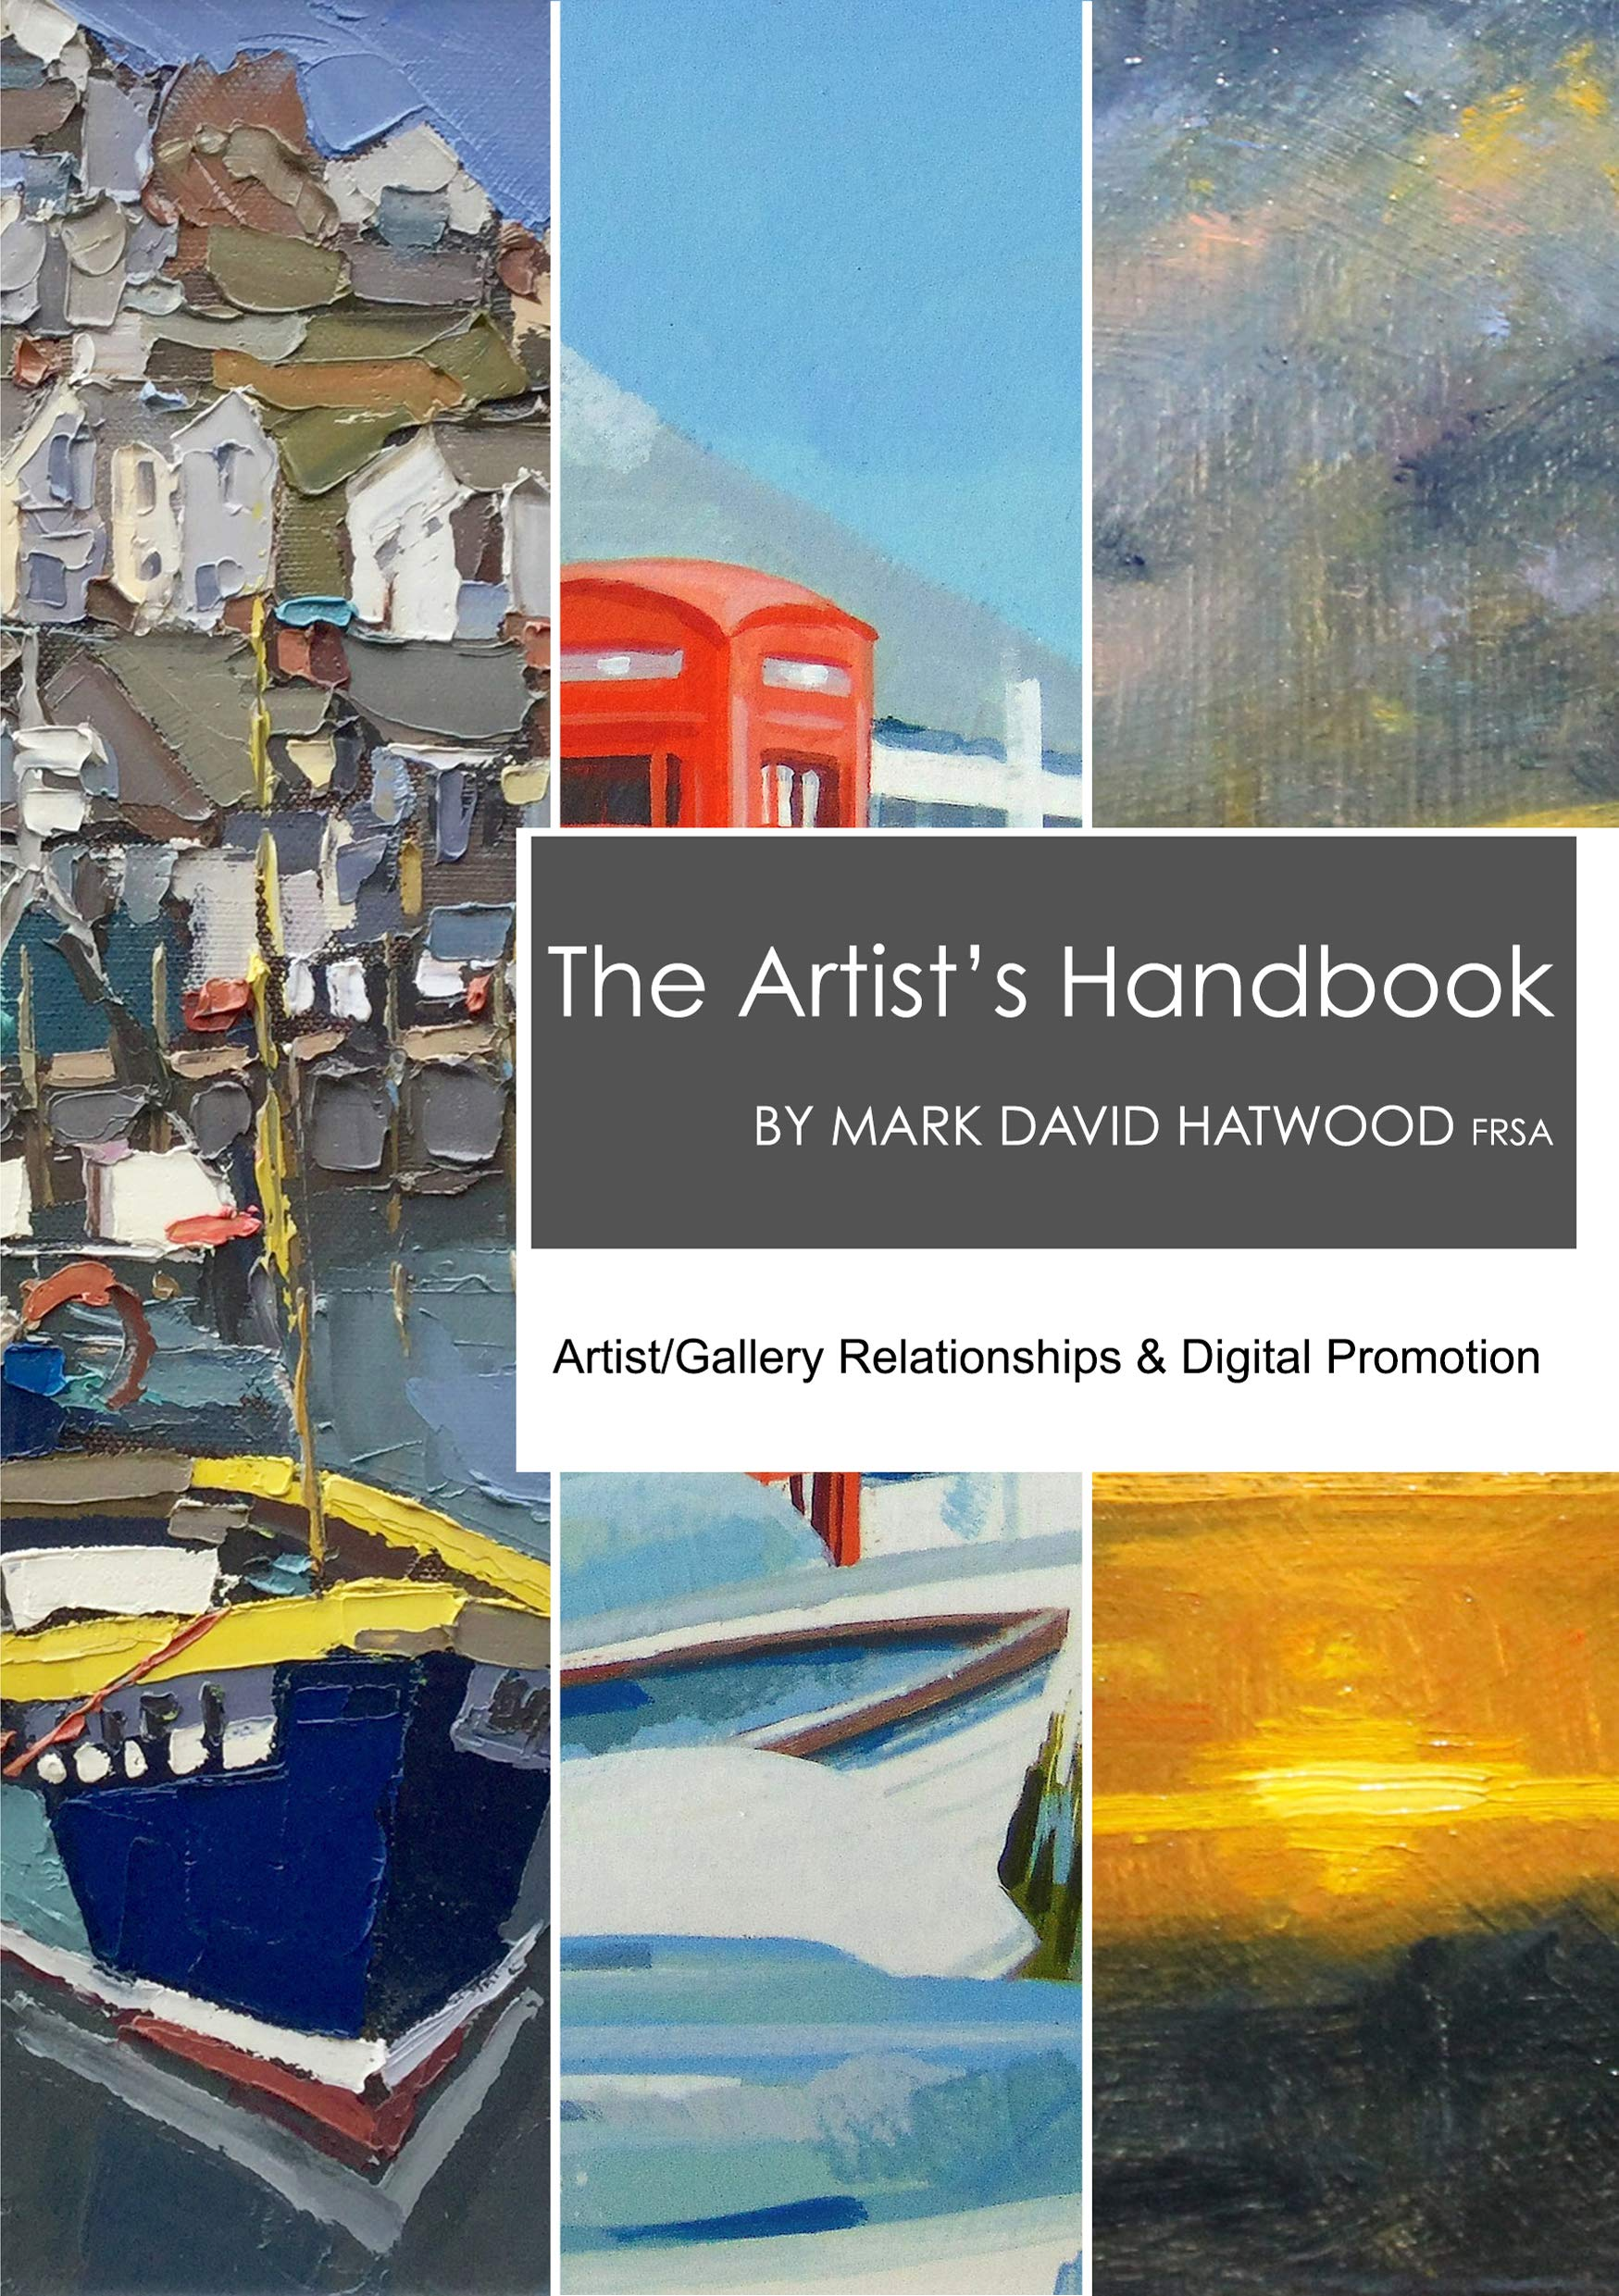 The Artist's Handbook: Artist/Gallery Relationships & Digital Promotion